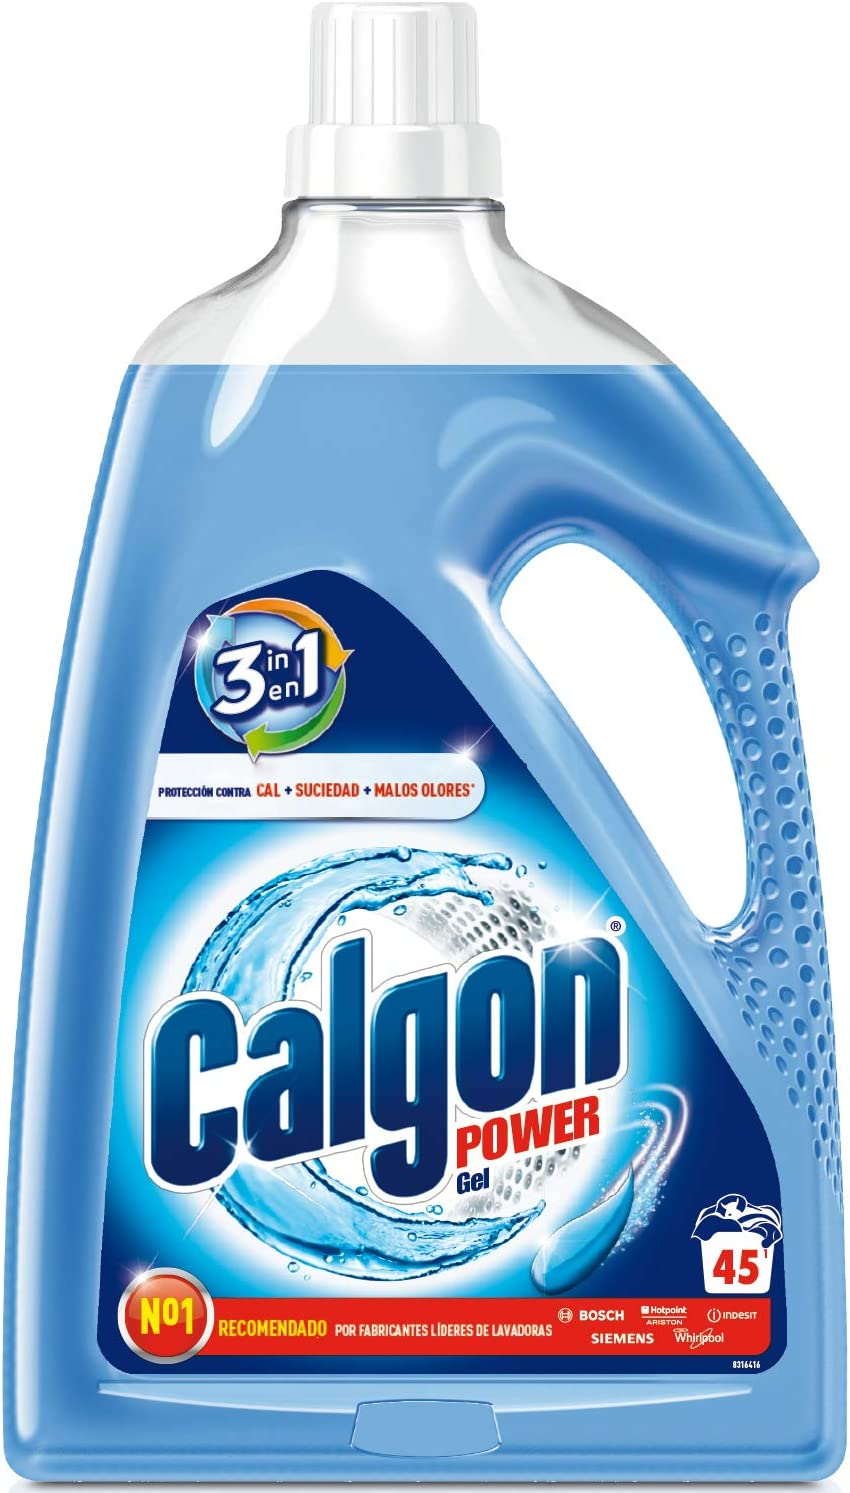 Calgon 3 en 1 Antical Lavadora Gel - 2.25 l